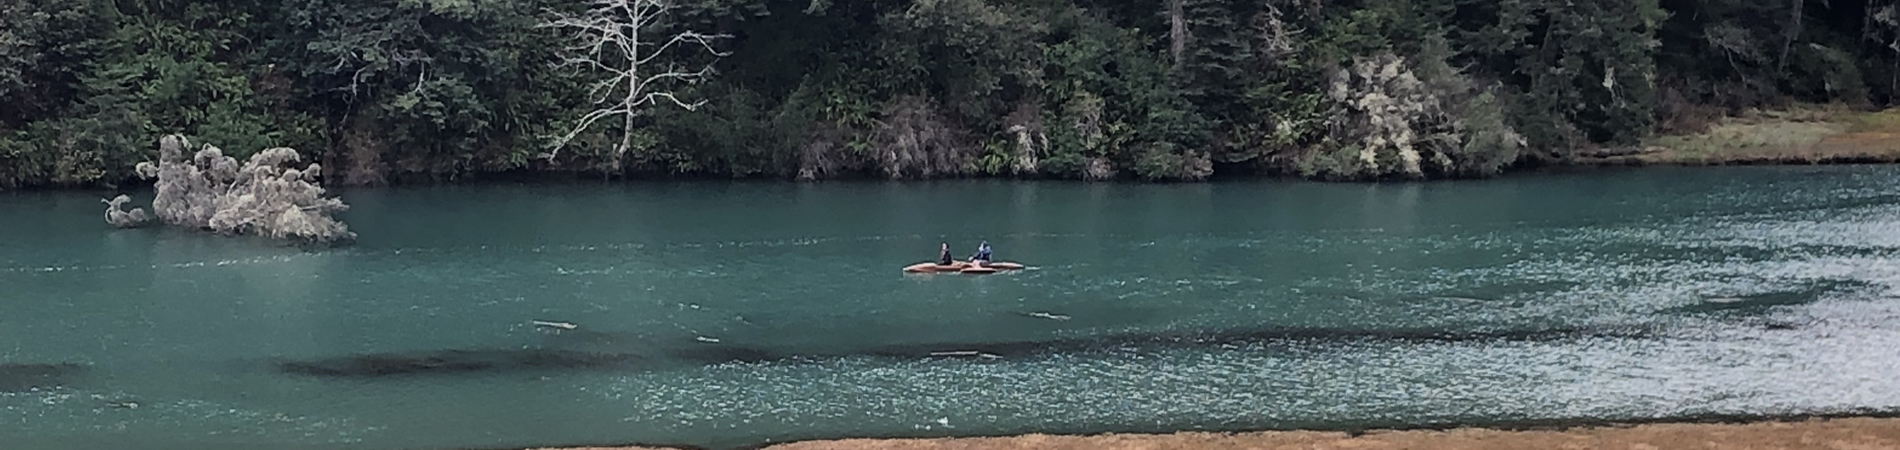 canoe on big river